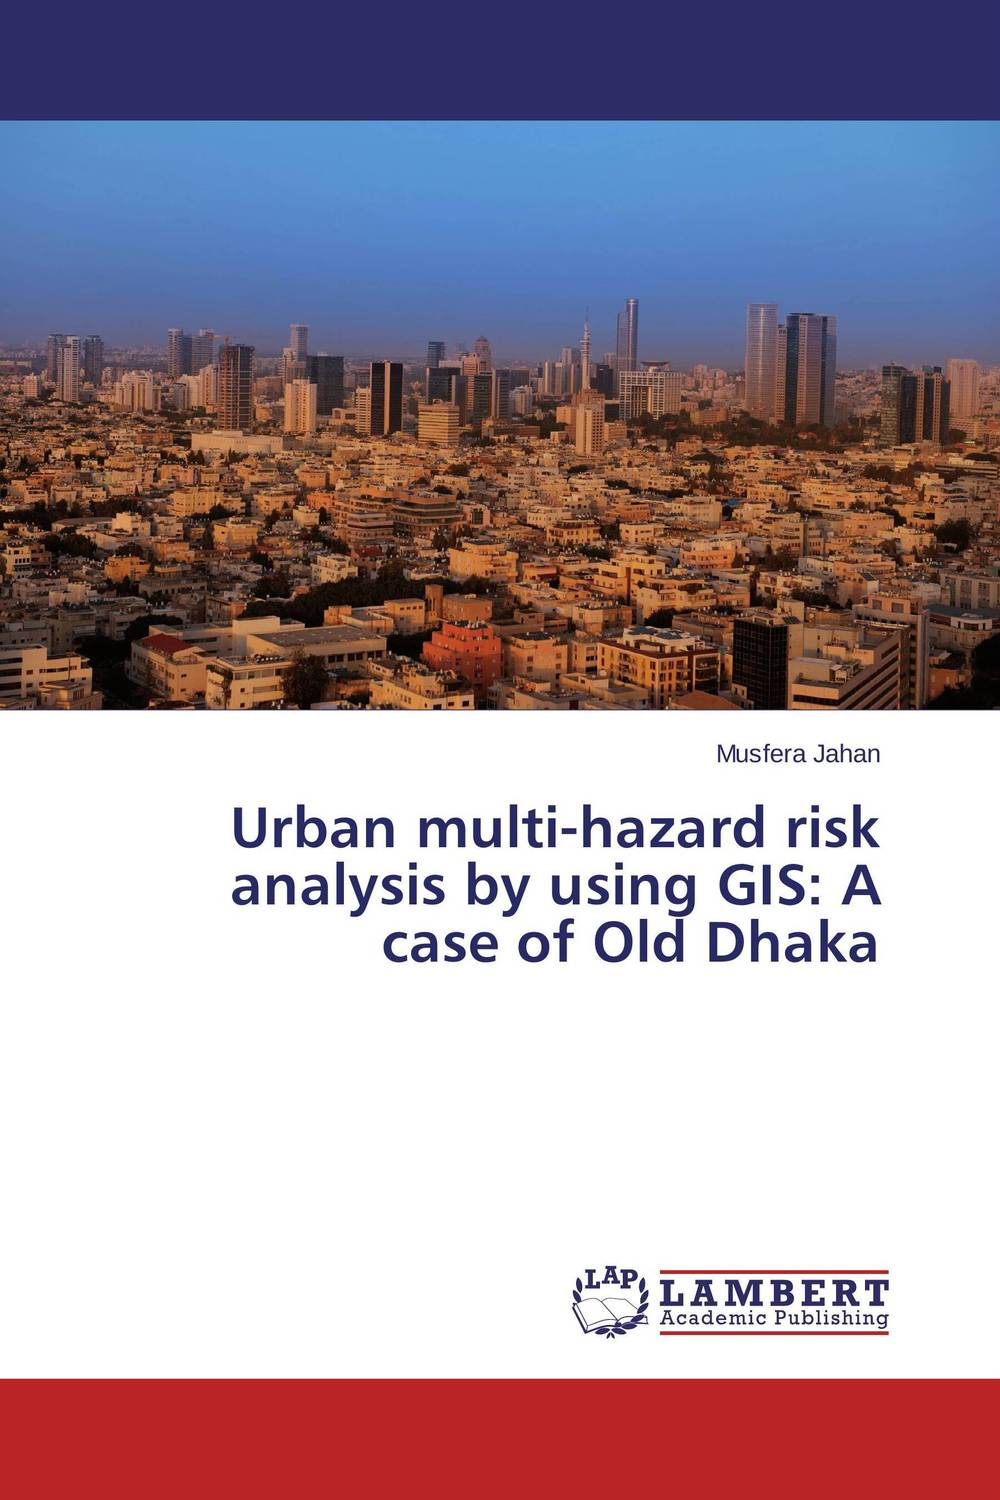 Urban multi-hazard risk analysis by using GIS: A case of Old Dhaka dilip kumar dam break analysis using hec ras a case study